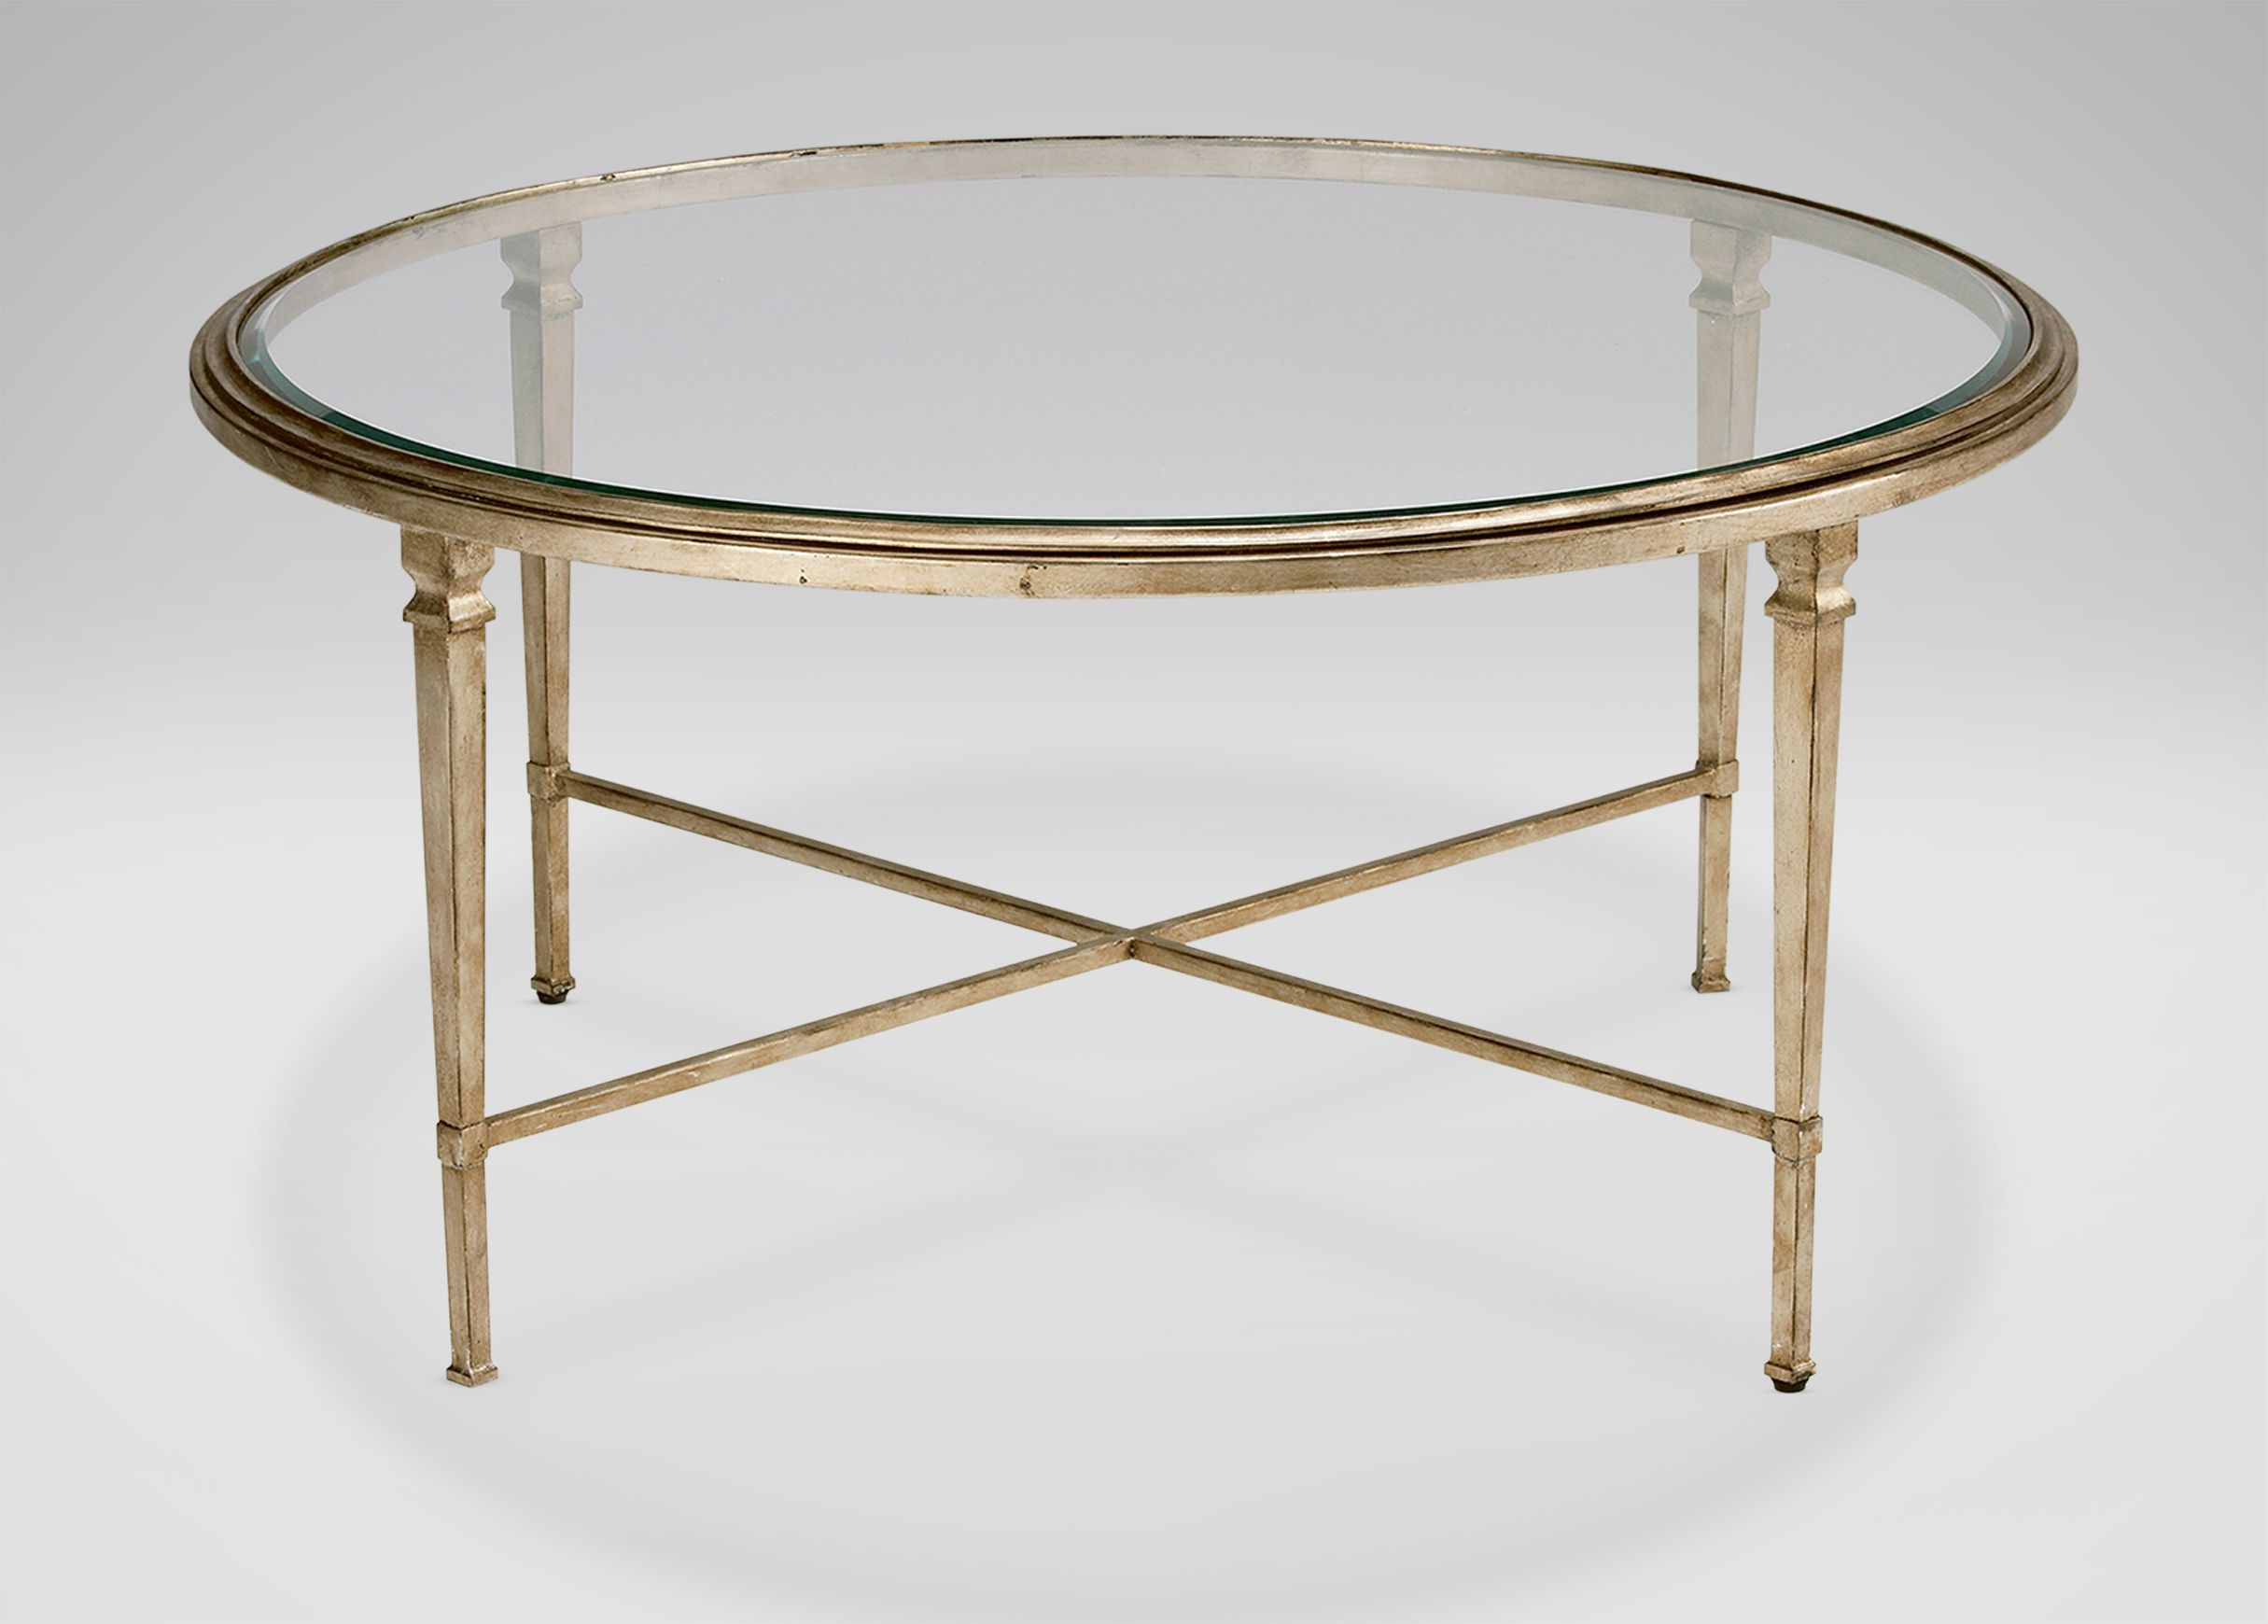 Heron Round Coffee Table Round Glass Coffee Table Antique